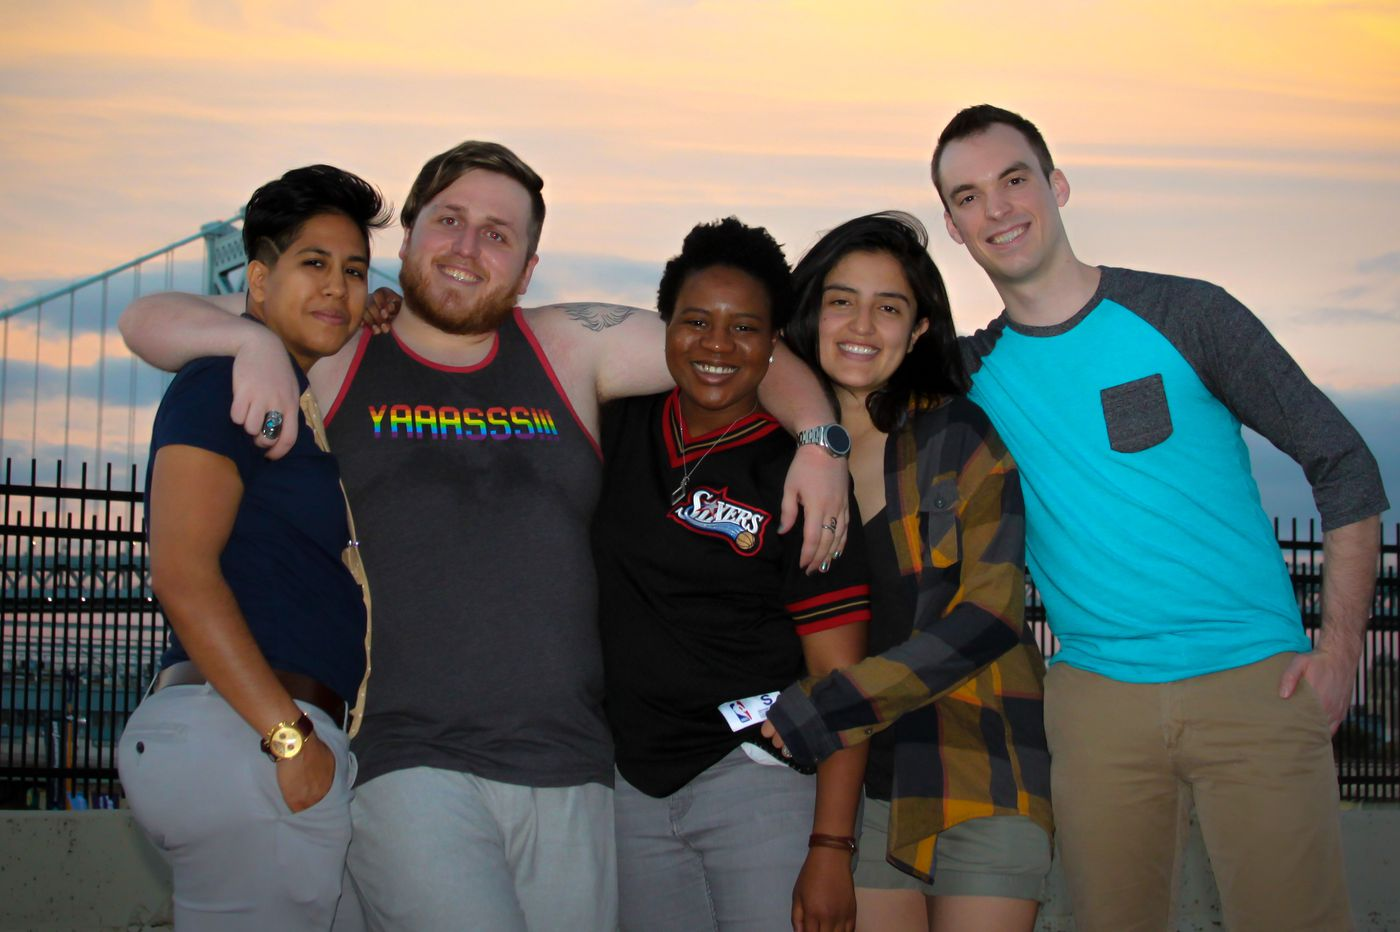 Qunify meetups bridge the differences in Philly's LGBTQ+ community